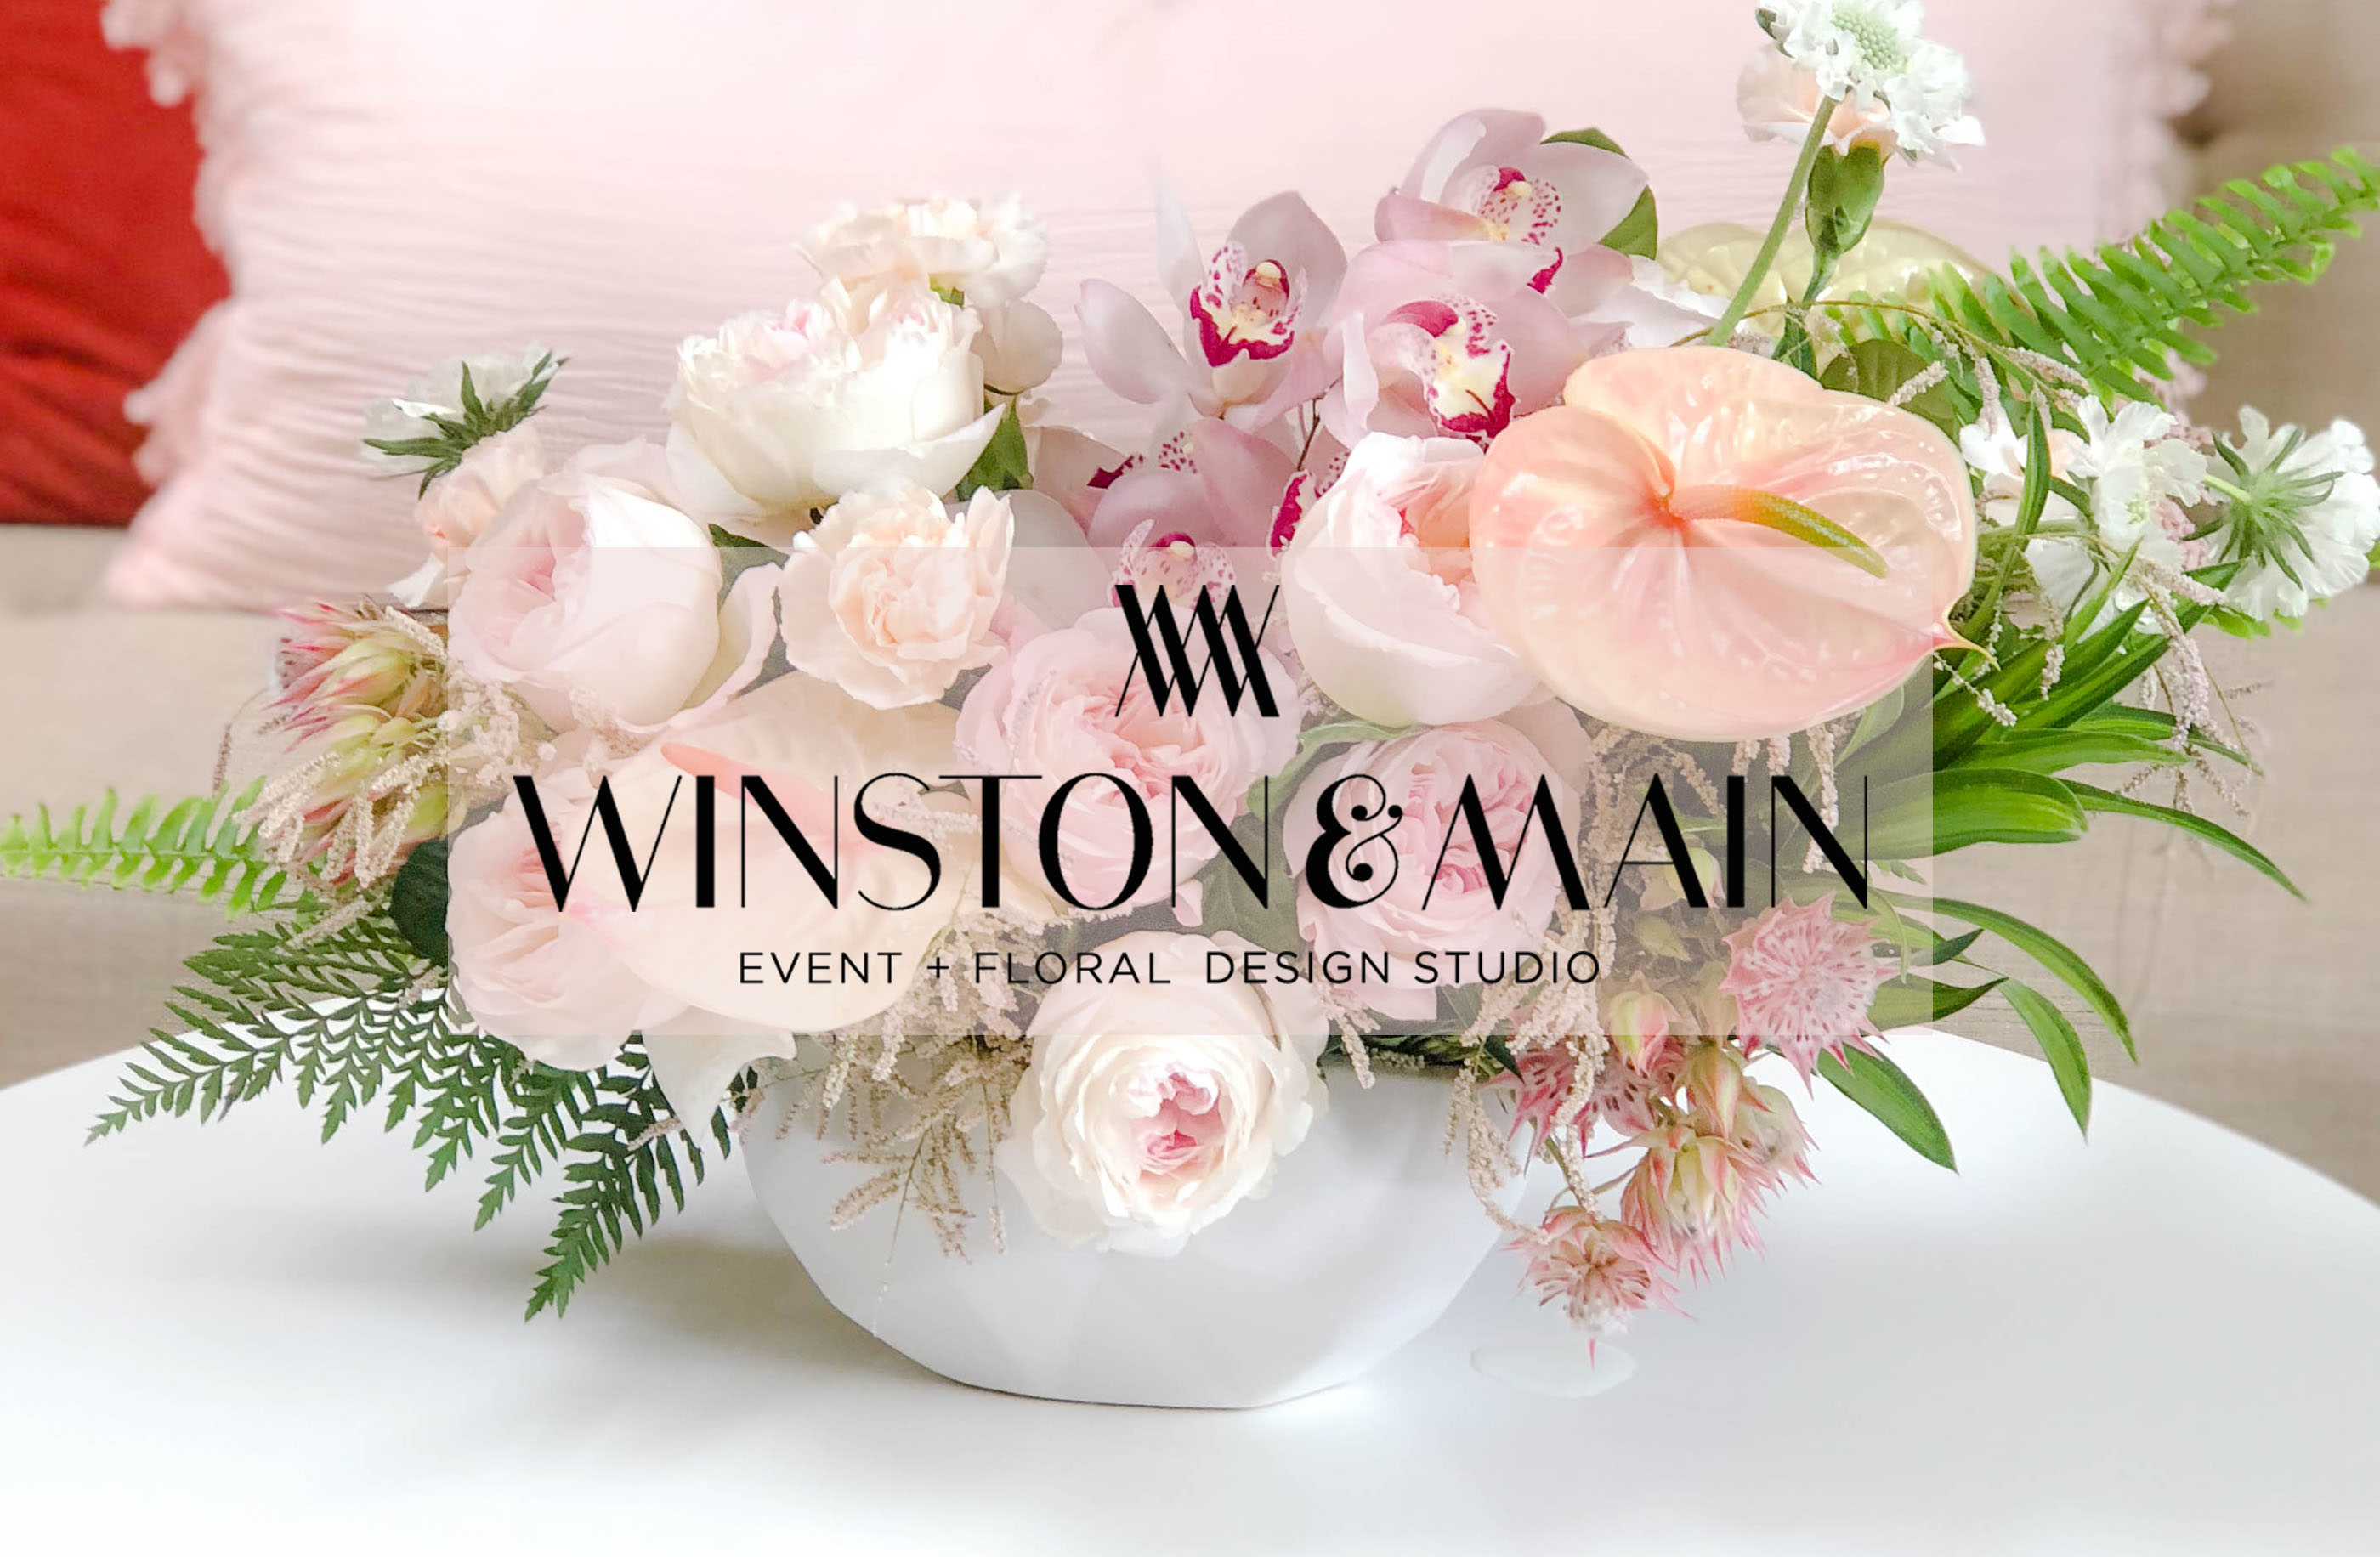 Winston & Main, Blush and Ivory Centerpiece with garden roses, anthurium, and fern.